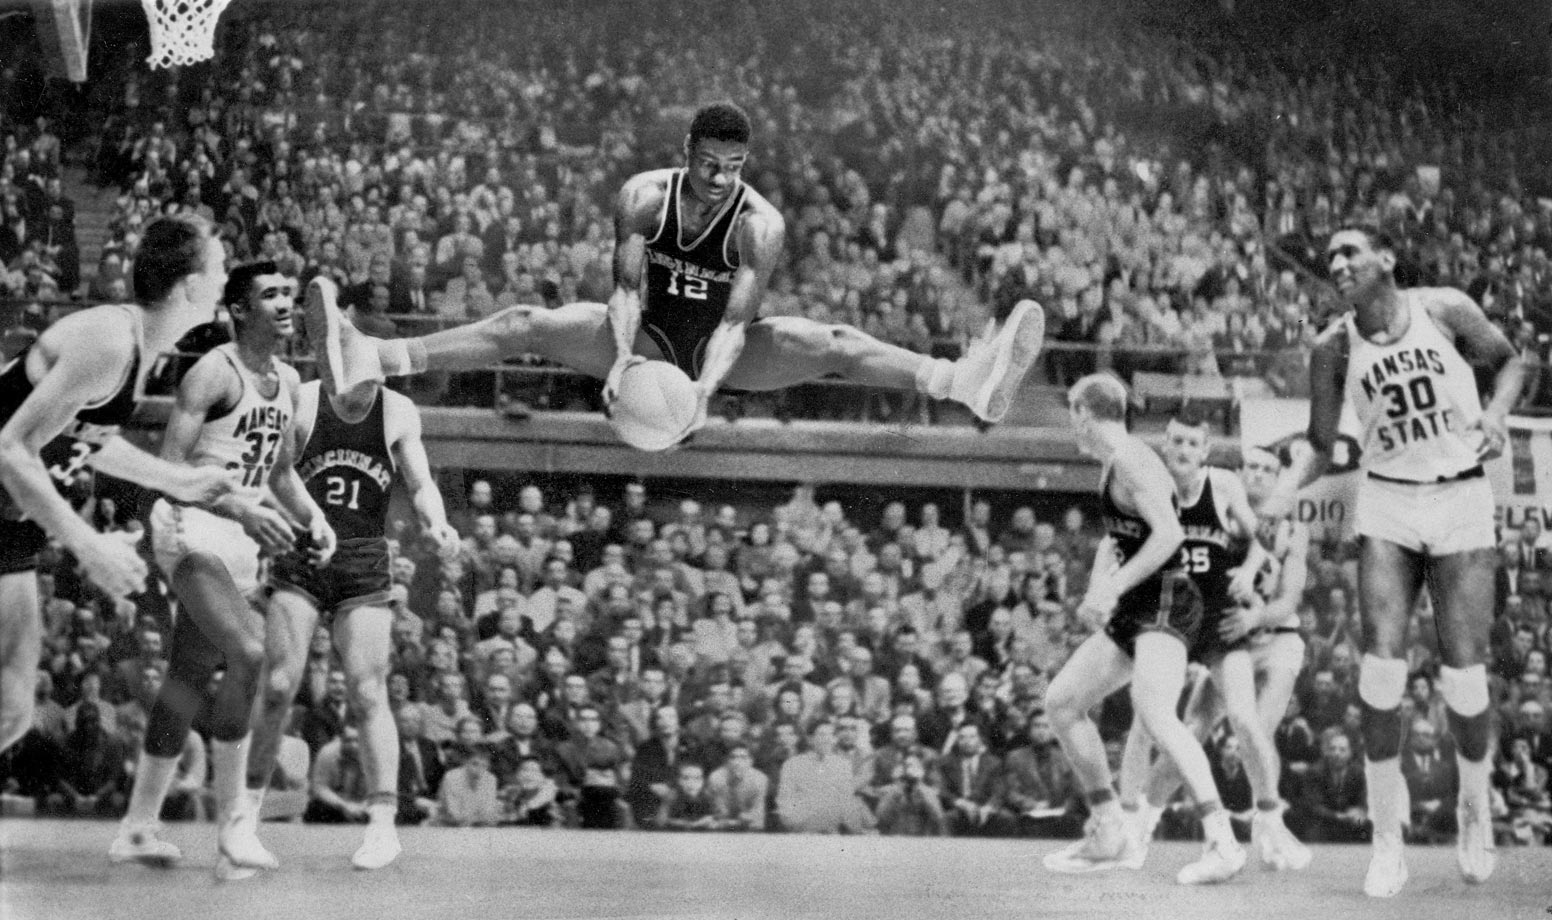 A scoring machine, Oscar Robertson led the nation in points in each of his three years at the varsity level and his 33.8 career points per game is third highest in history. Robertson led Cincinnati to back-to-back Final Fours in his junior and senior years, and the Bearcats lost just six games during that span. Individually, Robinson left college as the NCAA's all-time leading scorer, a record he held until Pete Maravich topped him. Robertson also won the USBWA's NCAA Division I Player of the Year Award in 1959 and 1960, the first two years it was given out. The award has since been renamed the Oscar Robertson Trophy.